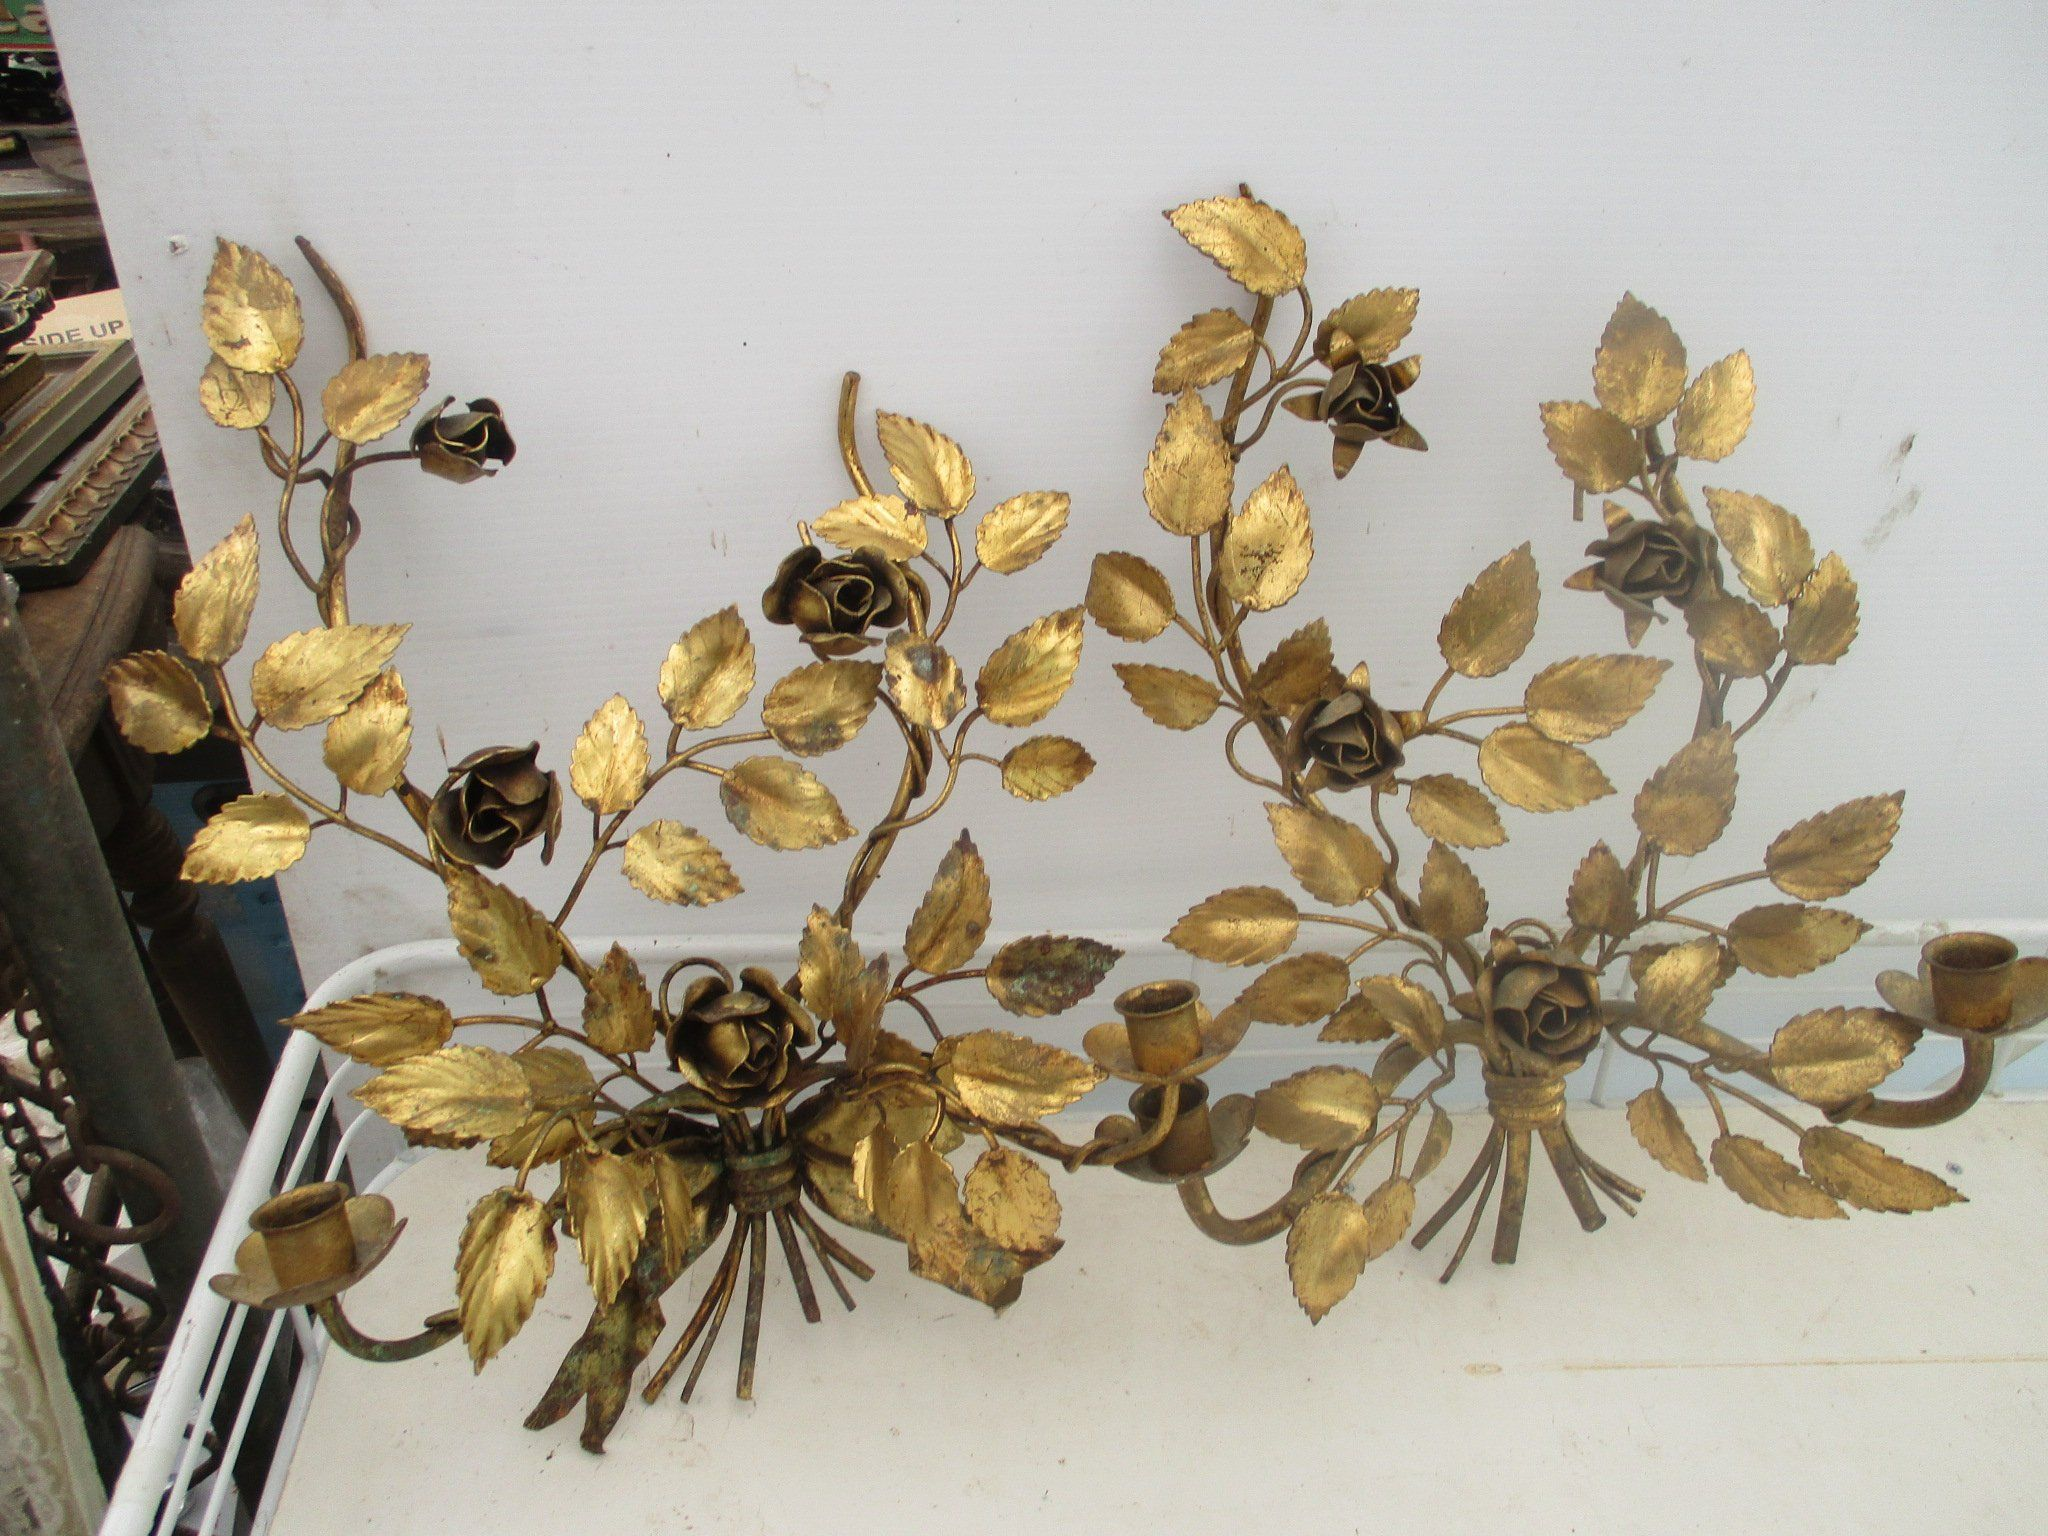 c593199eb30 REDUCED Vtg Pair Shabby Gold Metal Roses Leaf Vine Designs Italian Tole  Style 2 Arm Candle Holder Wall Sconces, Italy? by treasuretrovemarket on  Etsy